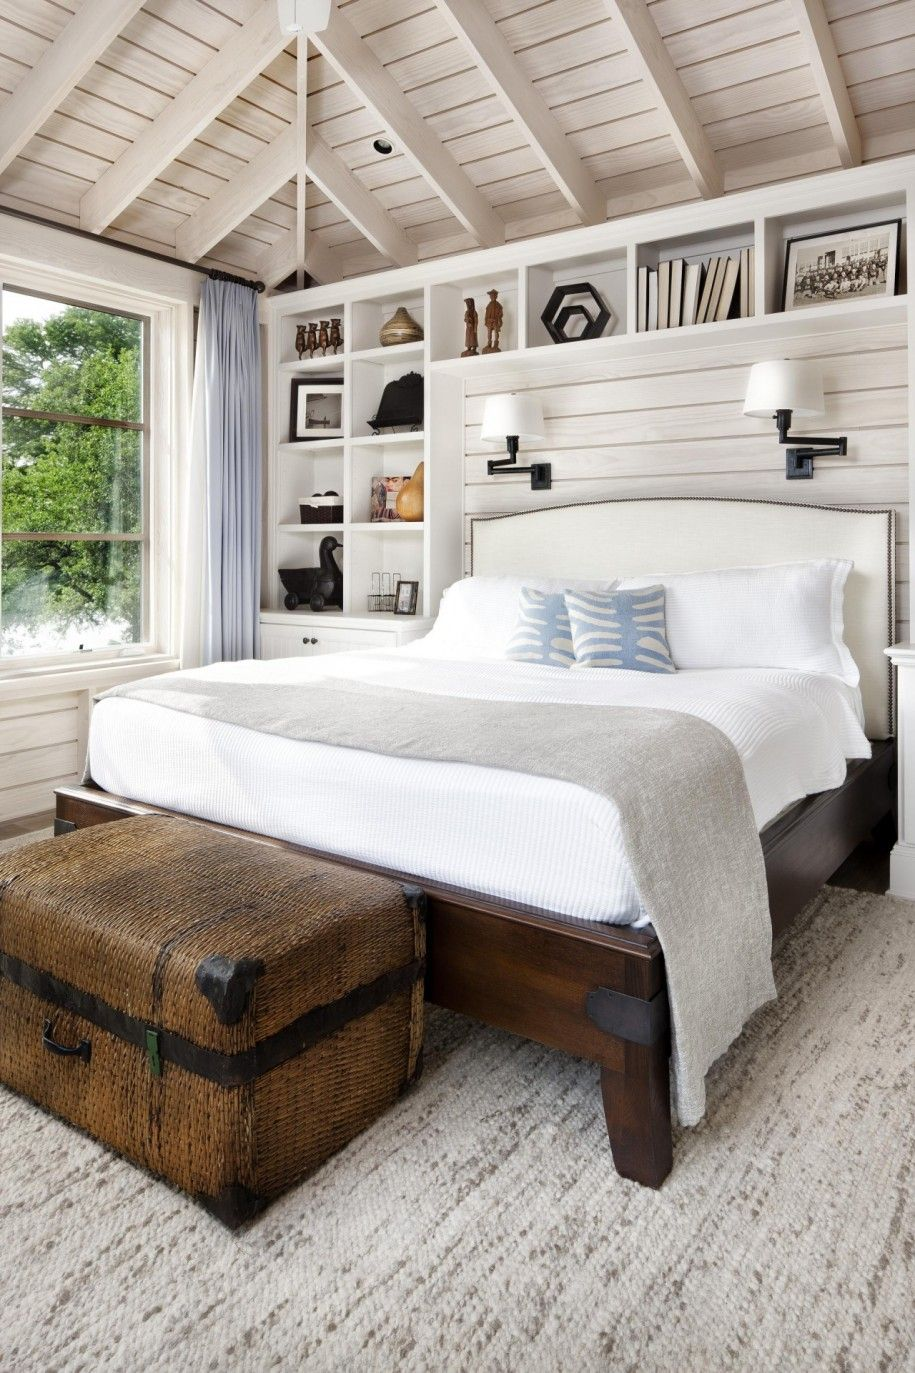 Upstairs loft bedroom ideas  country modern home decor  Google Search  Bedroom Design Ideas